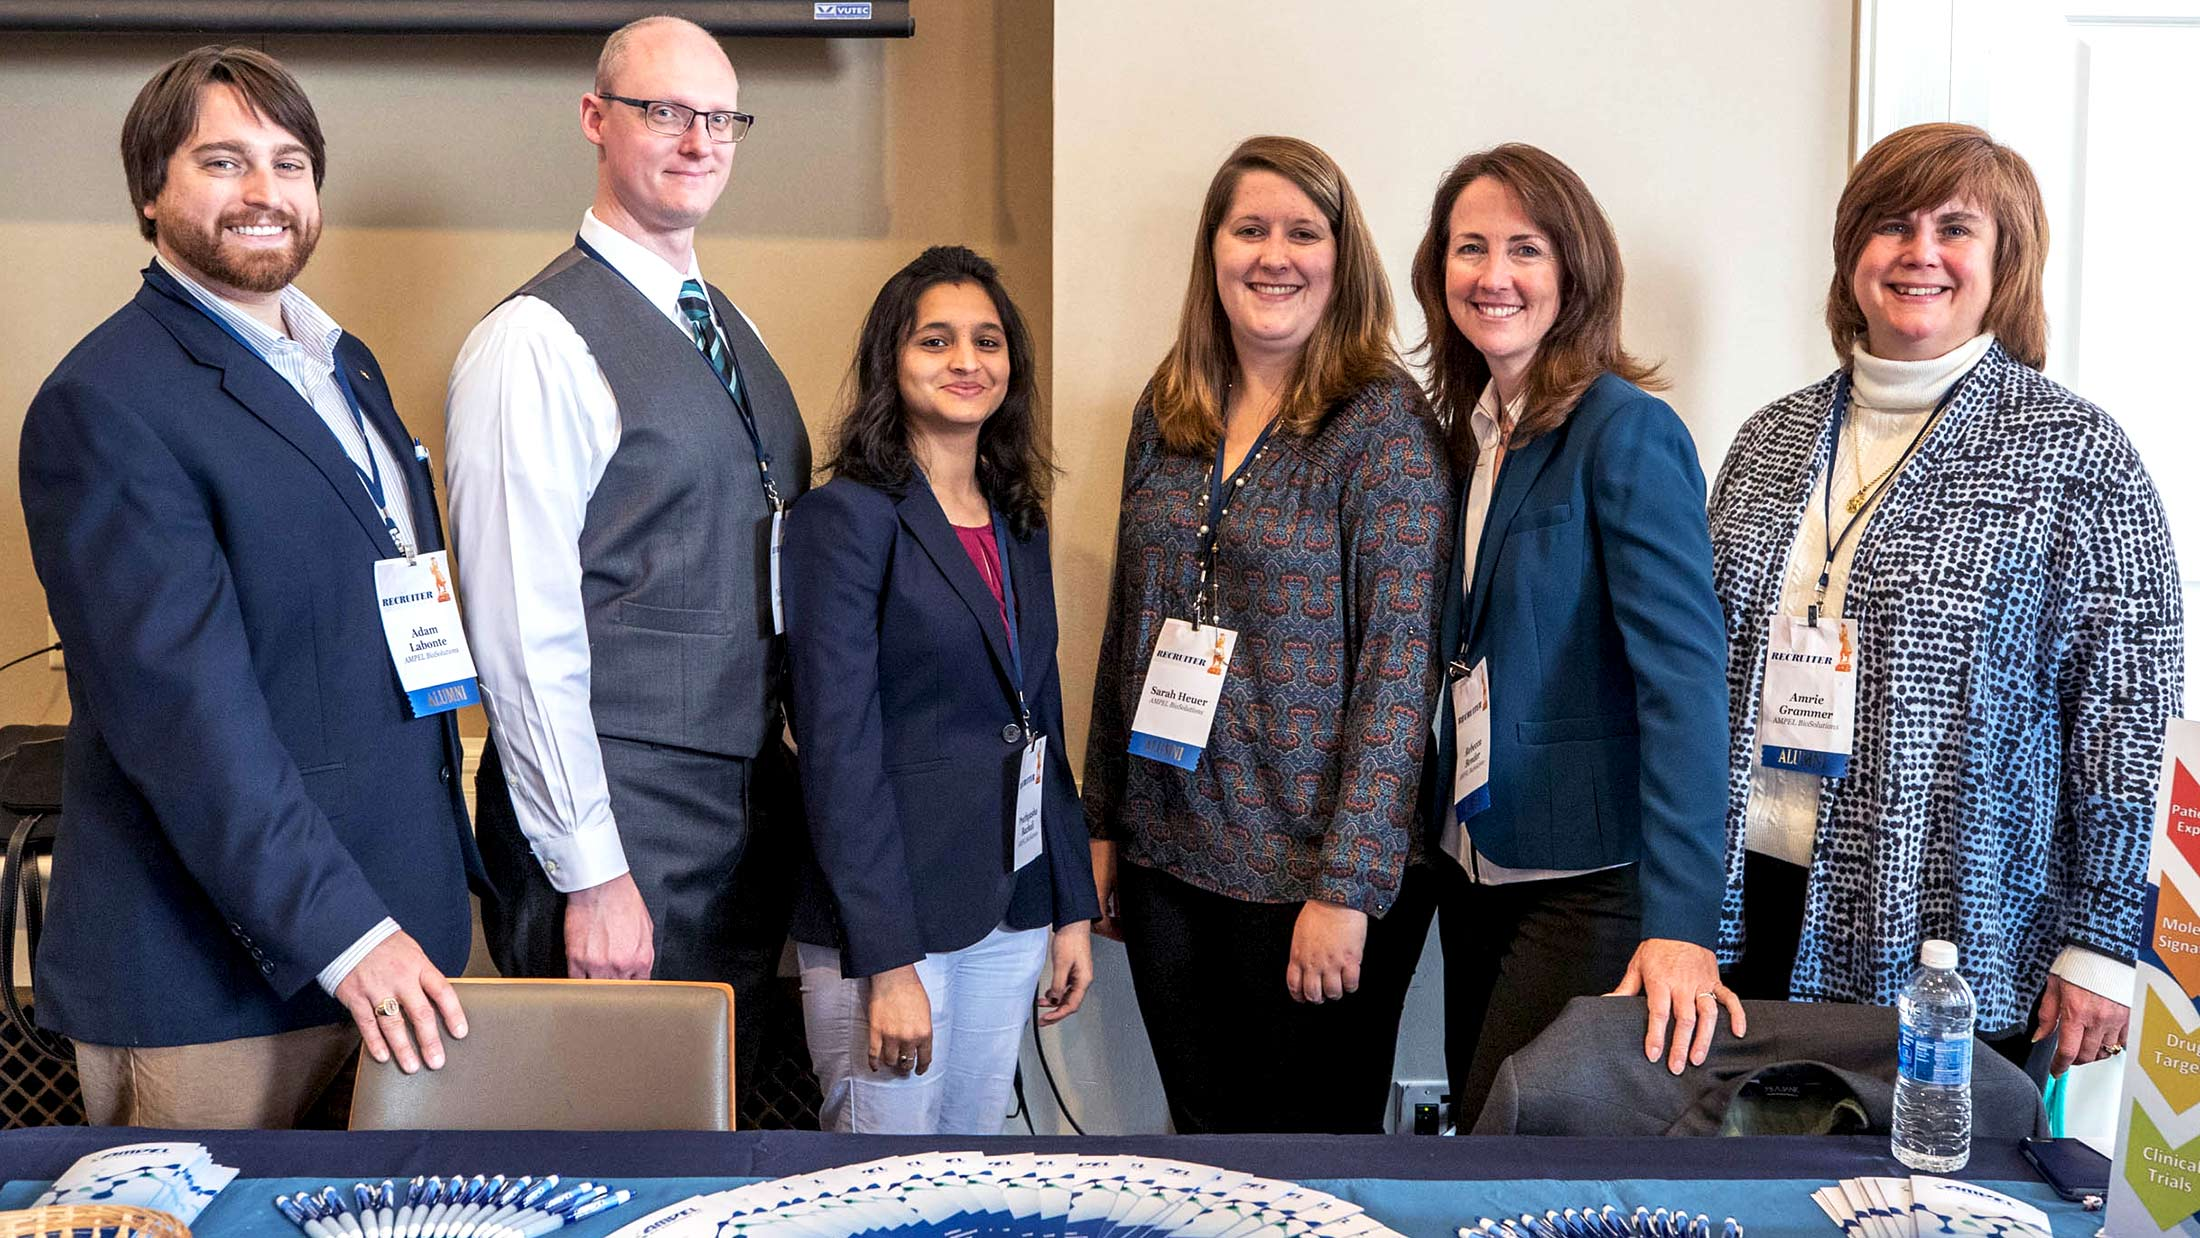 Grammer, far right, with her team from AMPEL BioSolutions, including from left to right, UVA alumnus Adam Labonte, Nick Geraci, Prathyusha Bachali, alumna Sarah Heuer and Rebecca Bender.